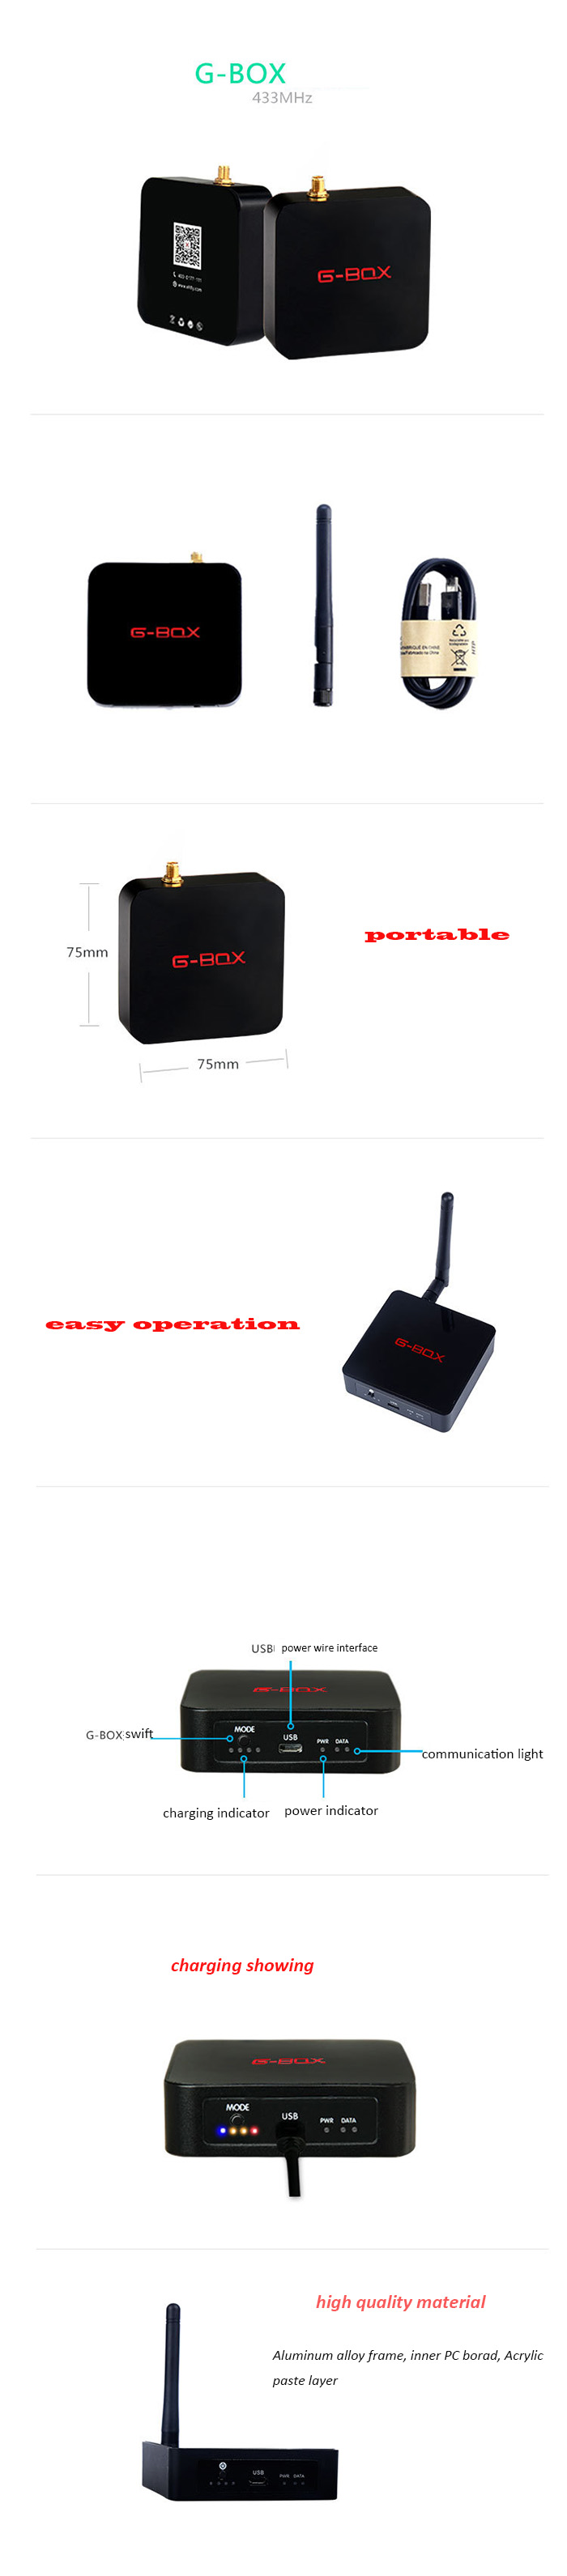 Boitier de Communication Bluetooth G-BOX version Android pour Ehang GHOST